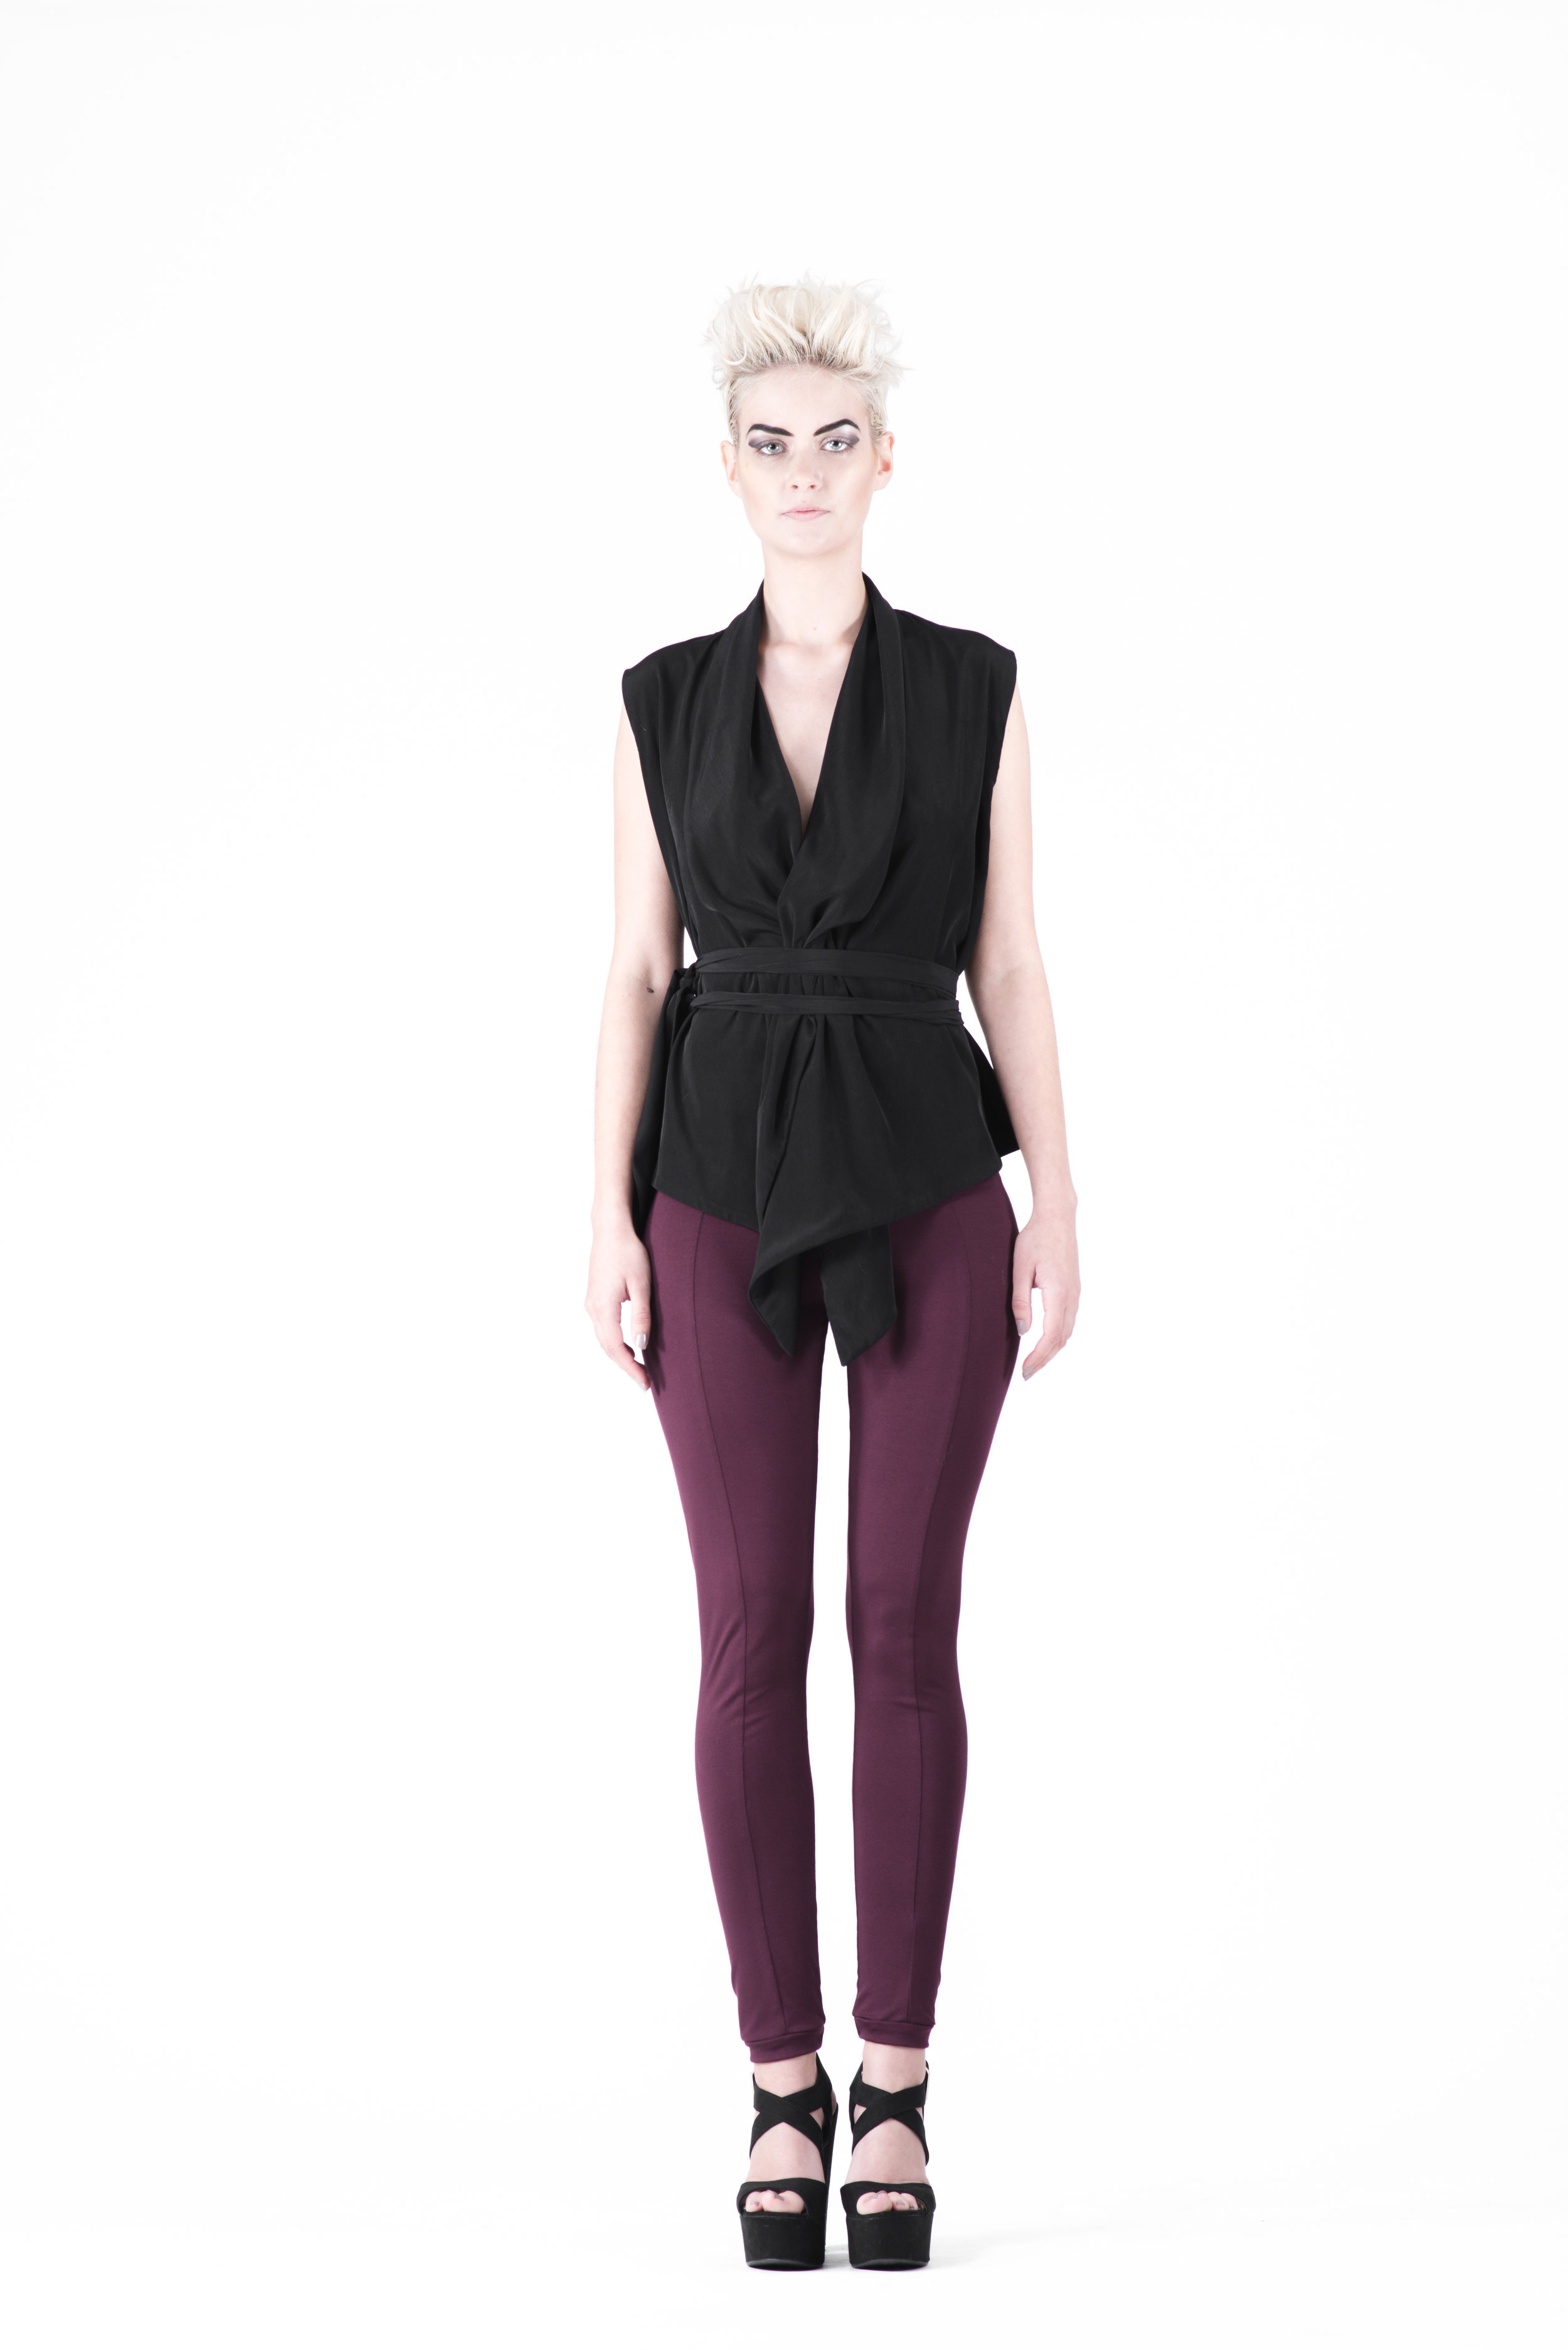 zaramia-ava-zaramiaava-leeds-fashion-designer-ethical-sustainable-tailored-minimalist-mioka-top-obi-belt-black-rei-plum-versatile-drape-cowl-styling-womenswear-models-photoshoot-50